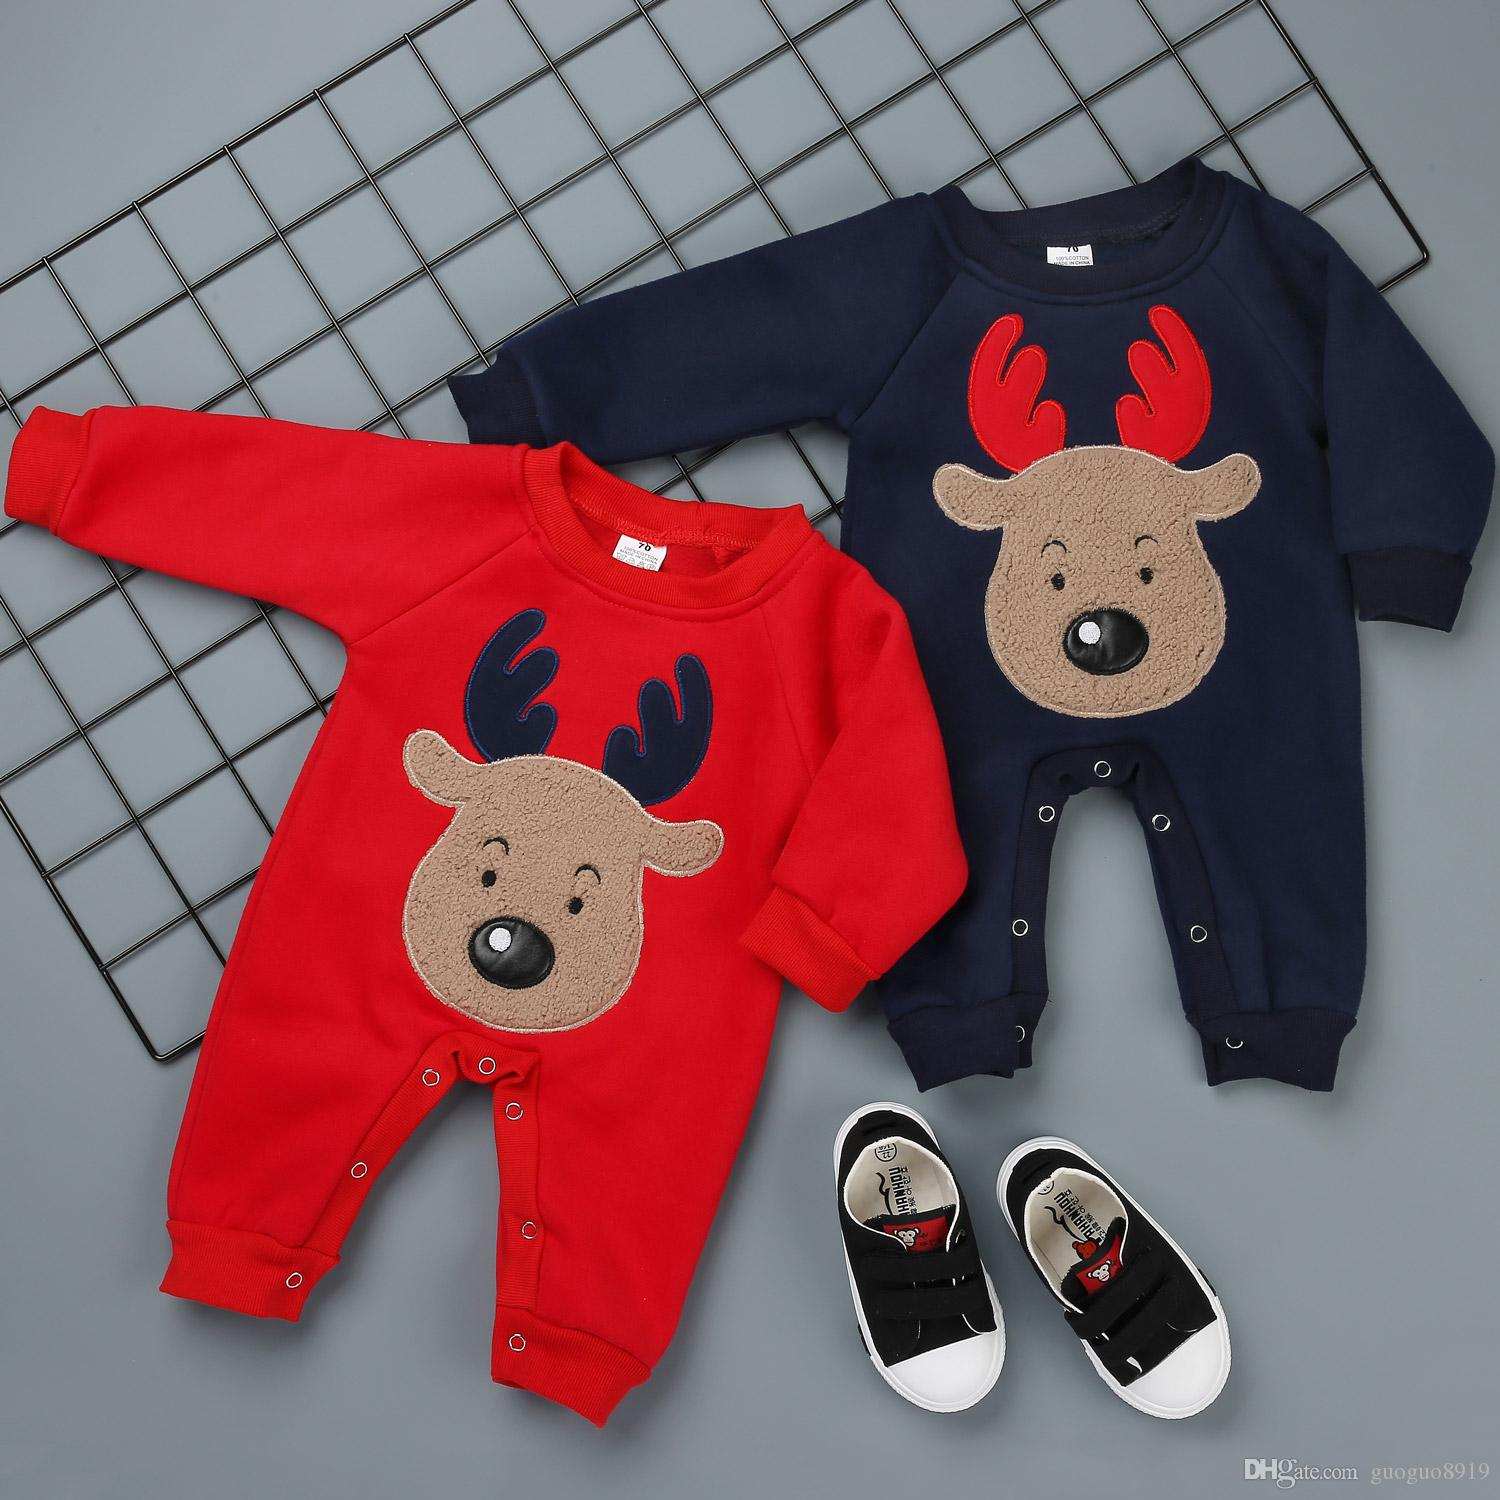 290b945d2 100%Cotton Baby Jumpers High Quality Baby One-Piece Christmas Elk ...